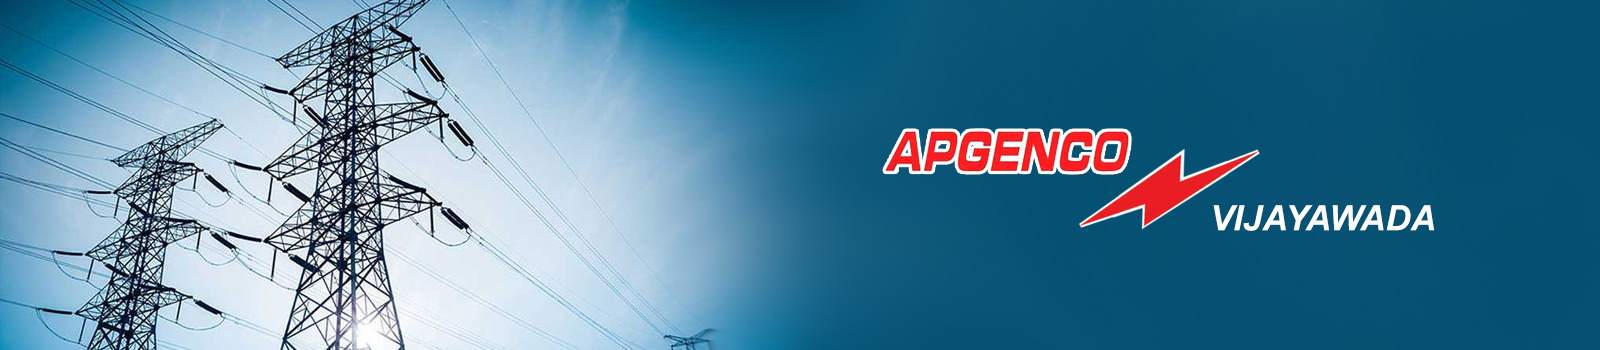 APGENCO, Vijaywada - Supply of Stacker Reclaimer